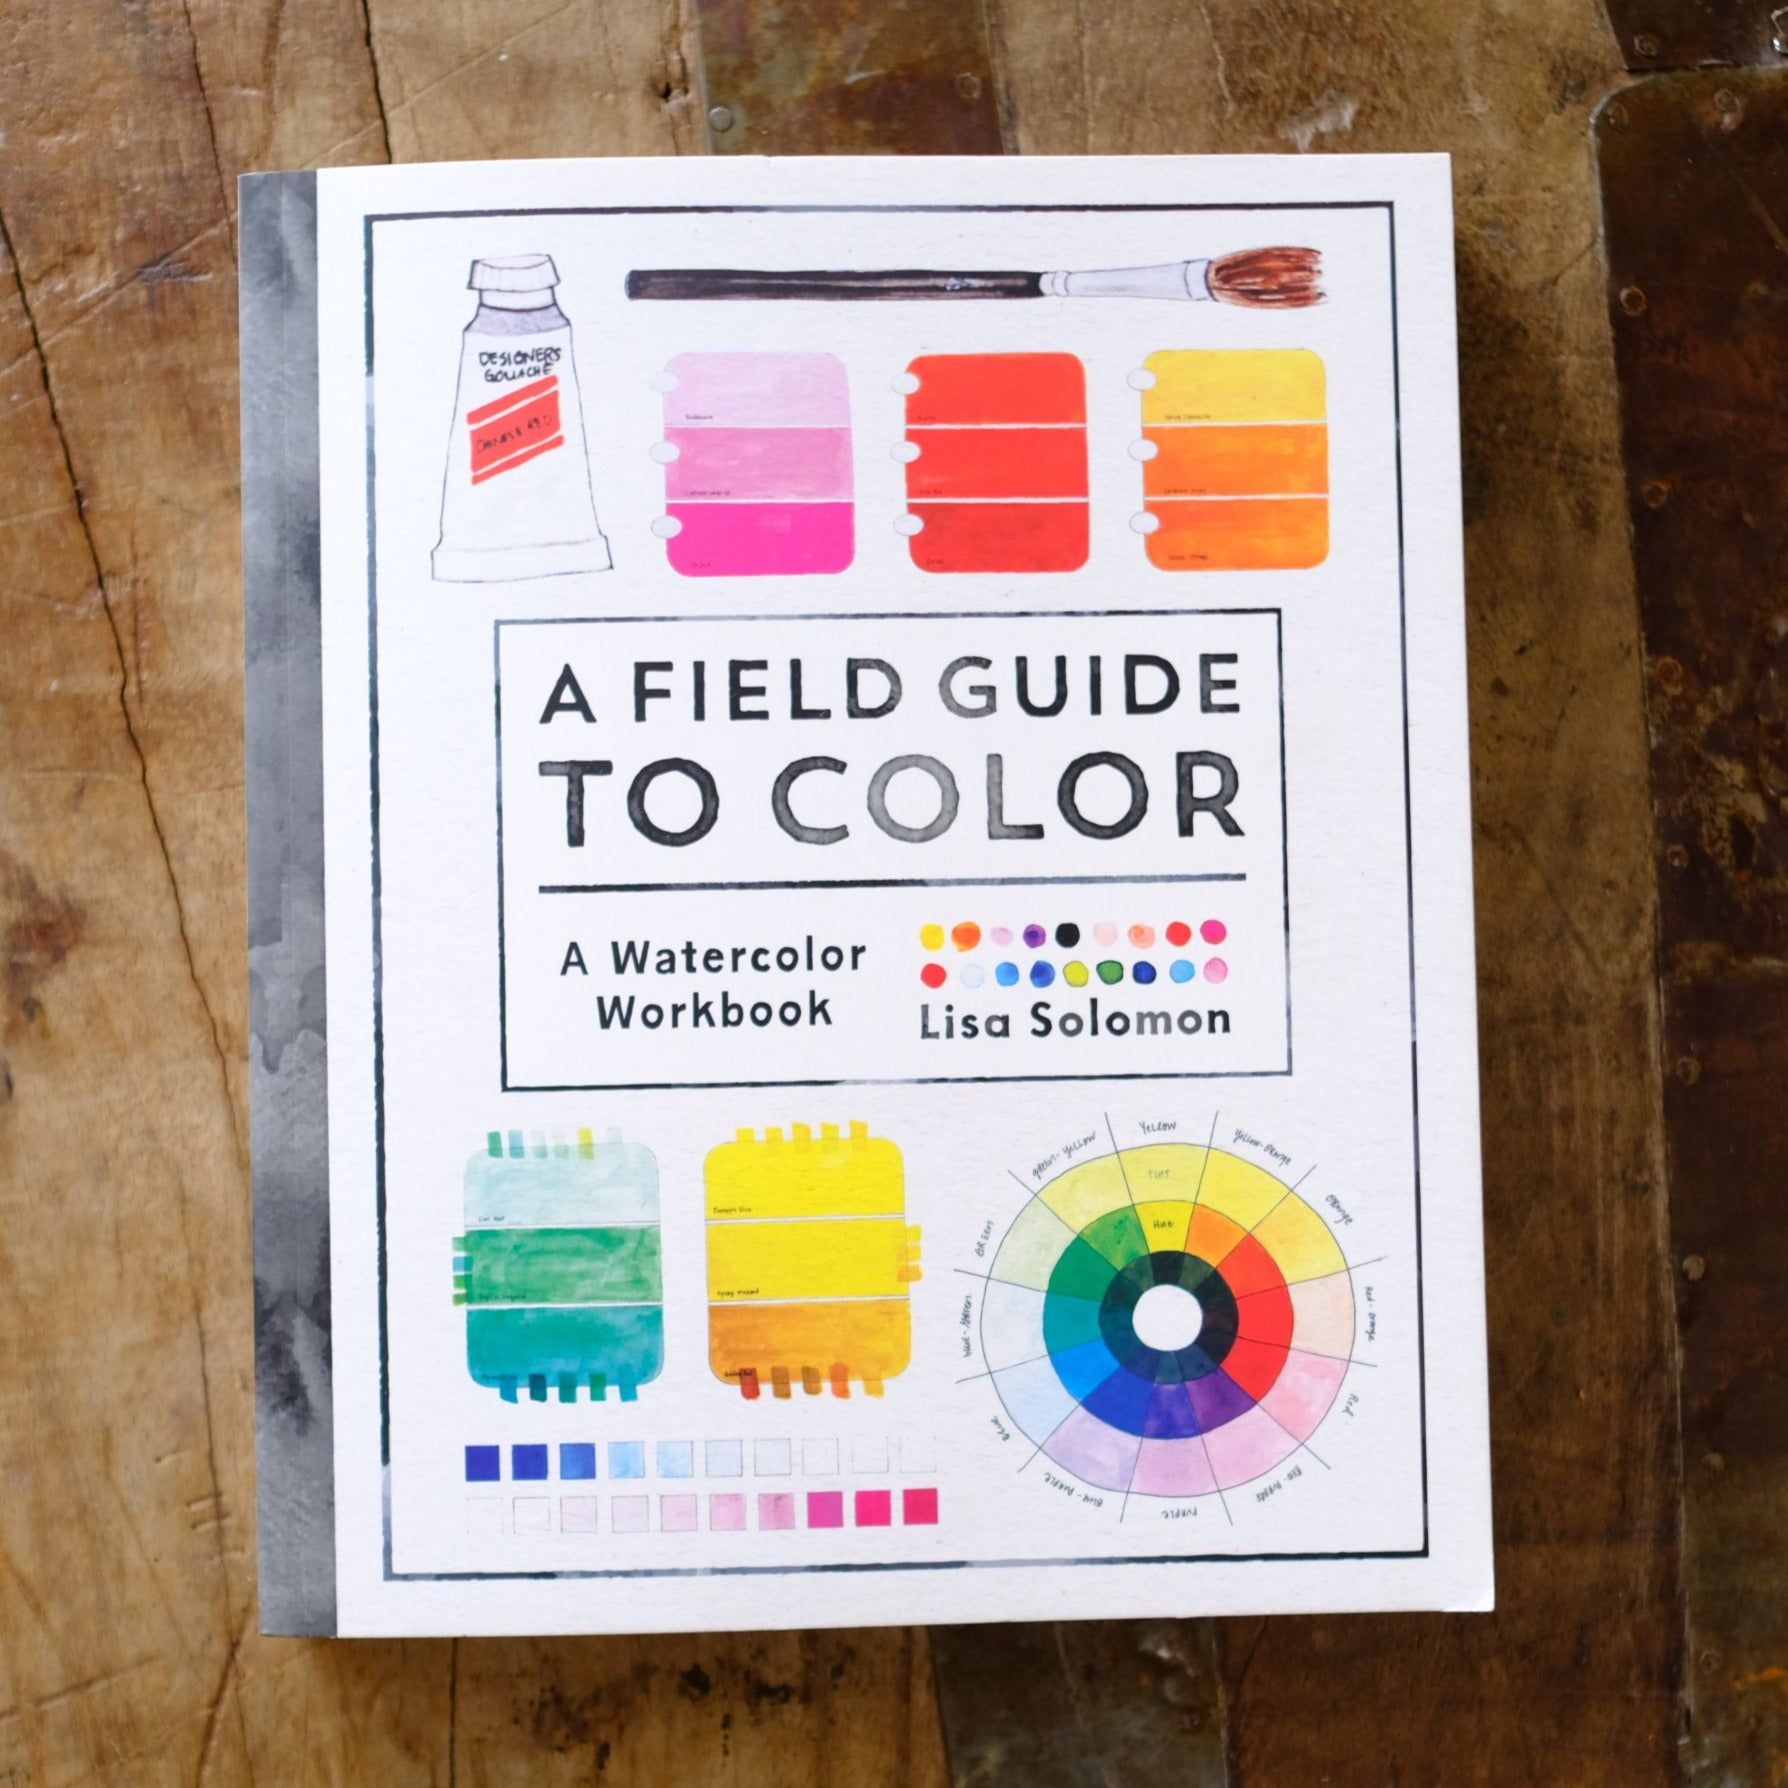 A Field Guide to Color: A Watercolor Workbook by Lisa Solomon - New!